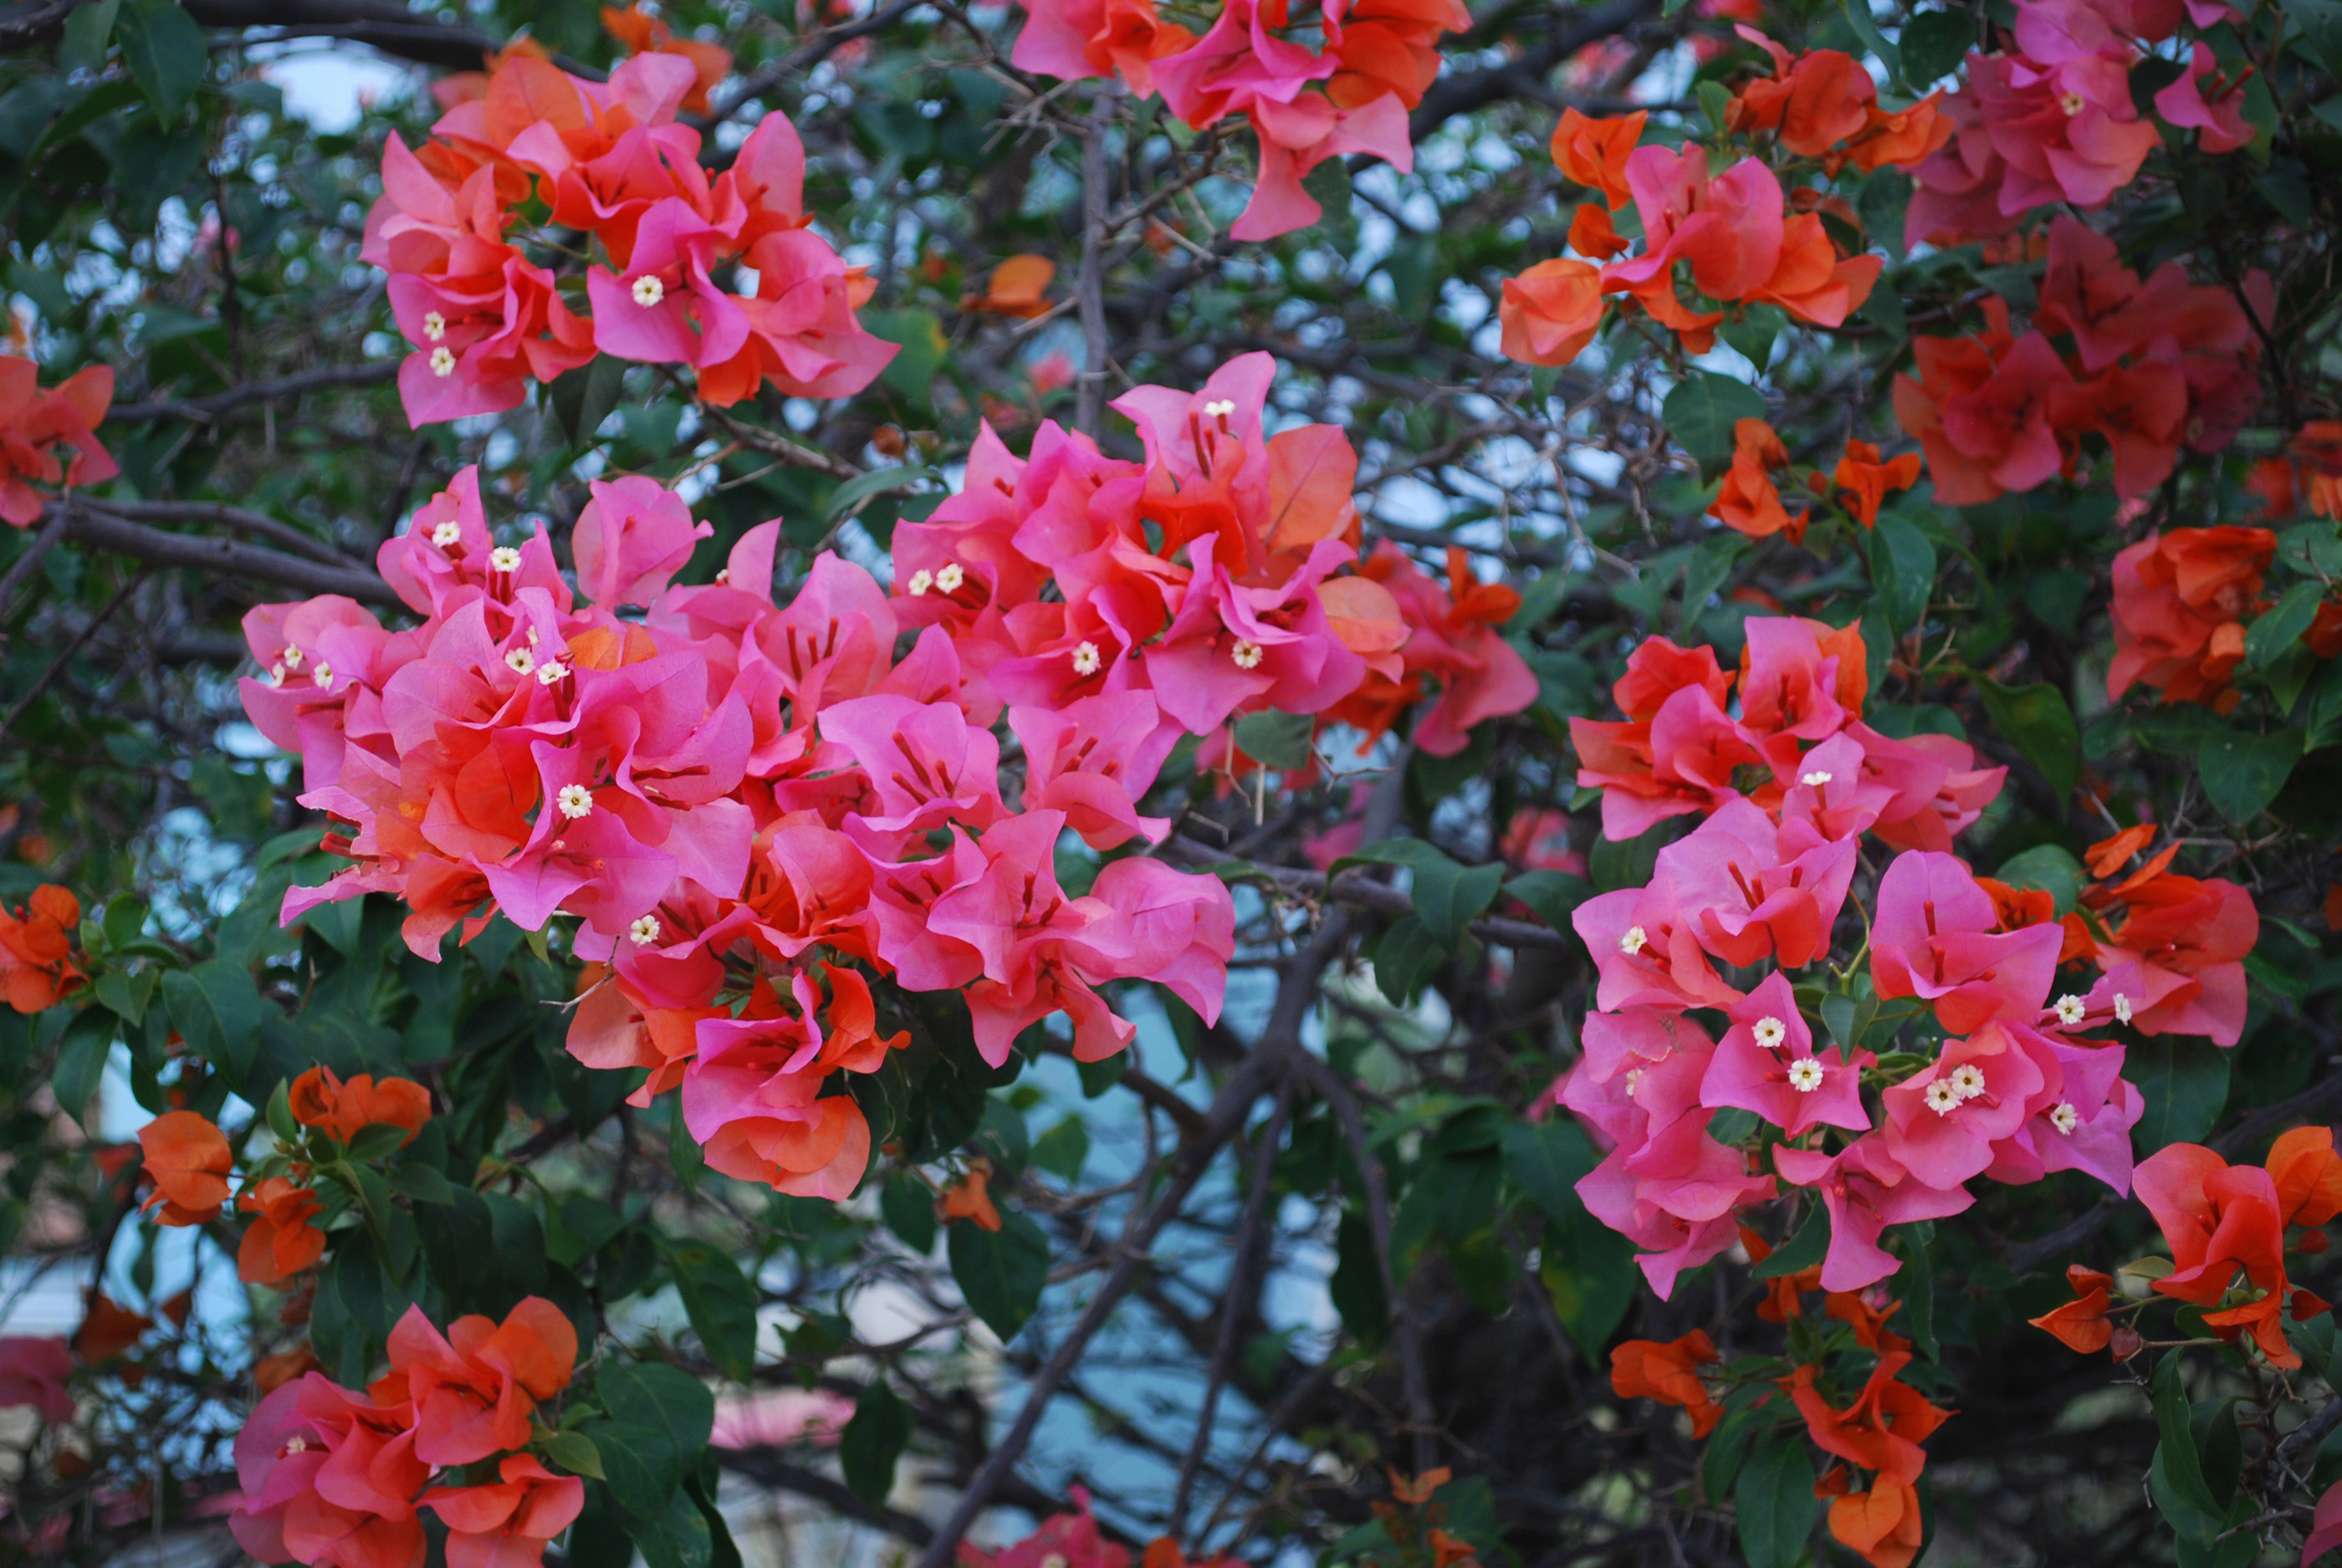 An example of the vibrant blooms that line the streets of the town.